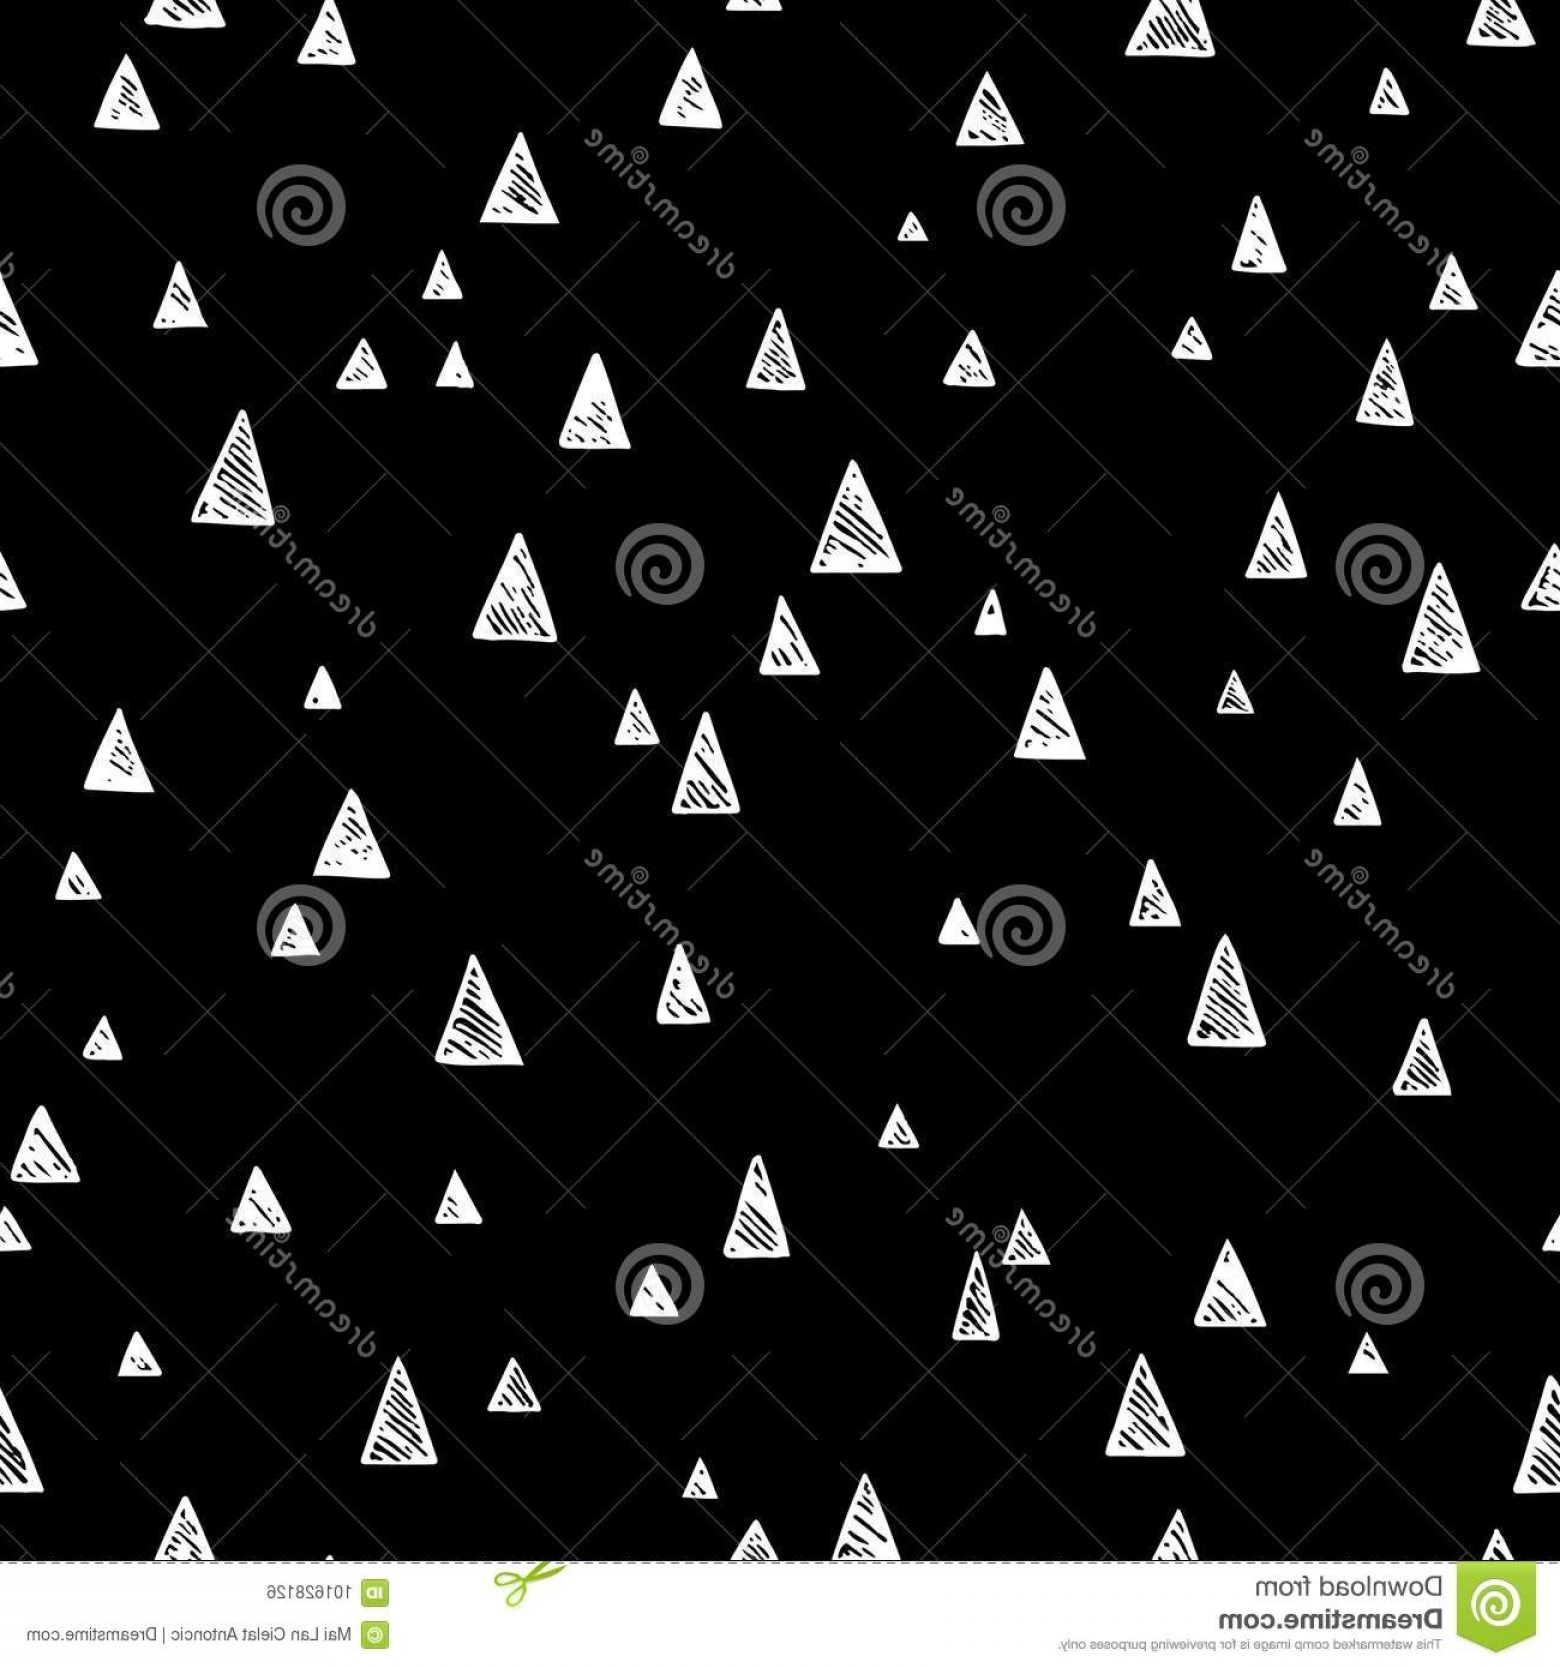 Black And White Negative Vector: Vector Illustration Hand Drawn Seamless Pattern Negative Black White Colors Different Size Triangles Seamless Image